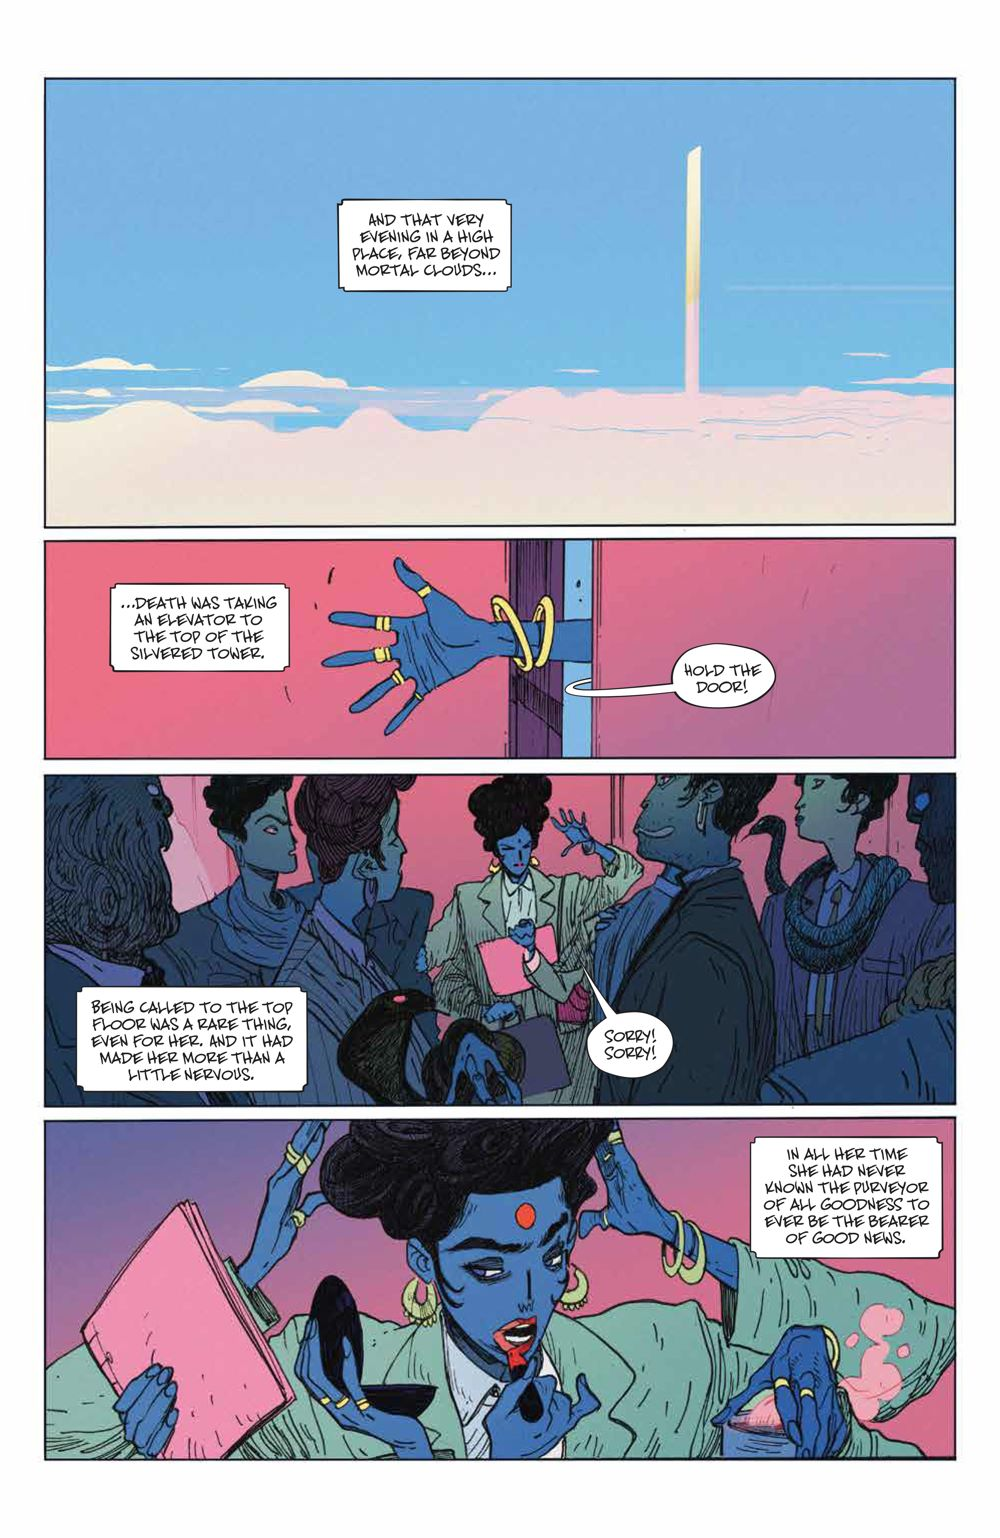 ManyDeathsLailaStarr_001_PRESS_6 ComicList Previews: THE MANY DEATHS OF LAILA STARR #1